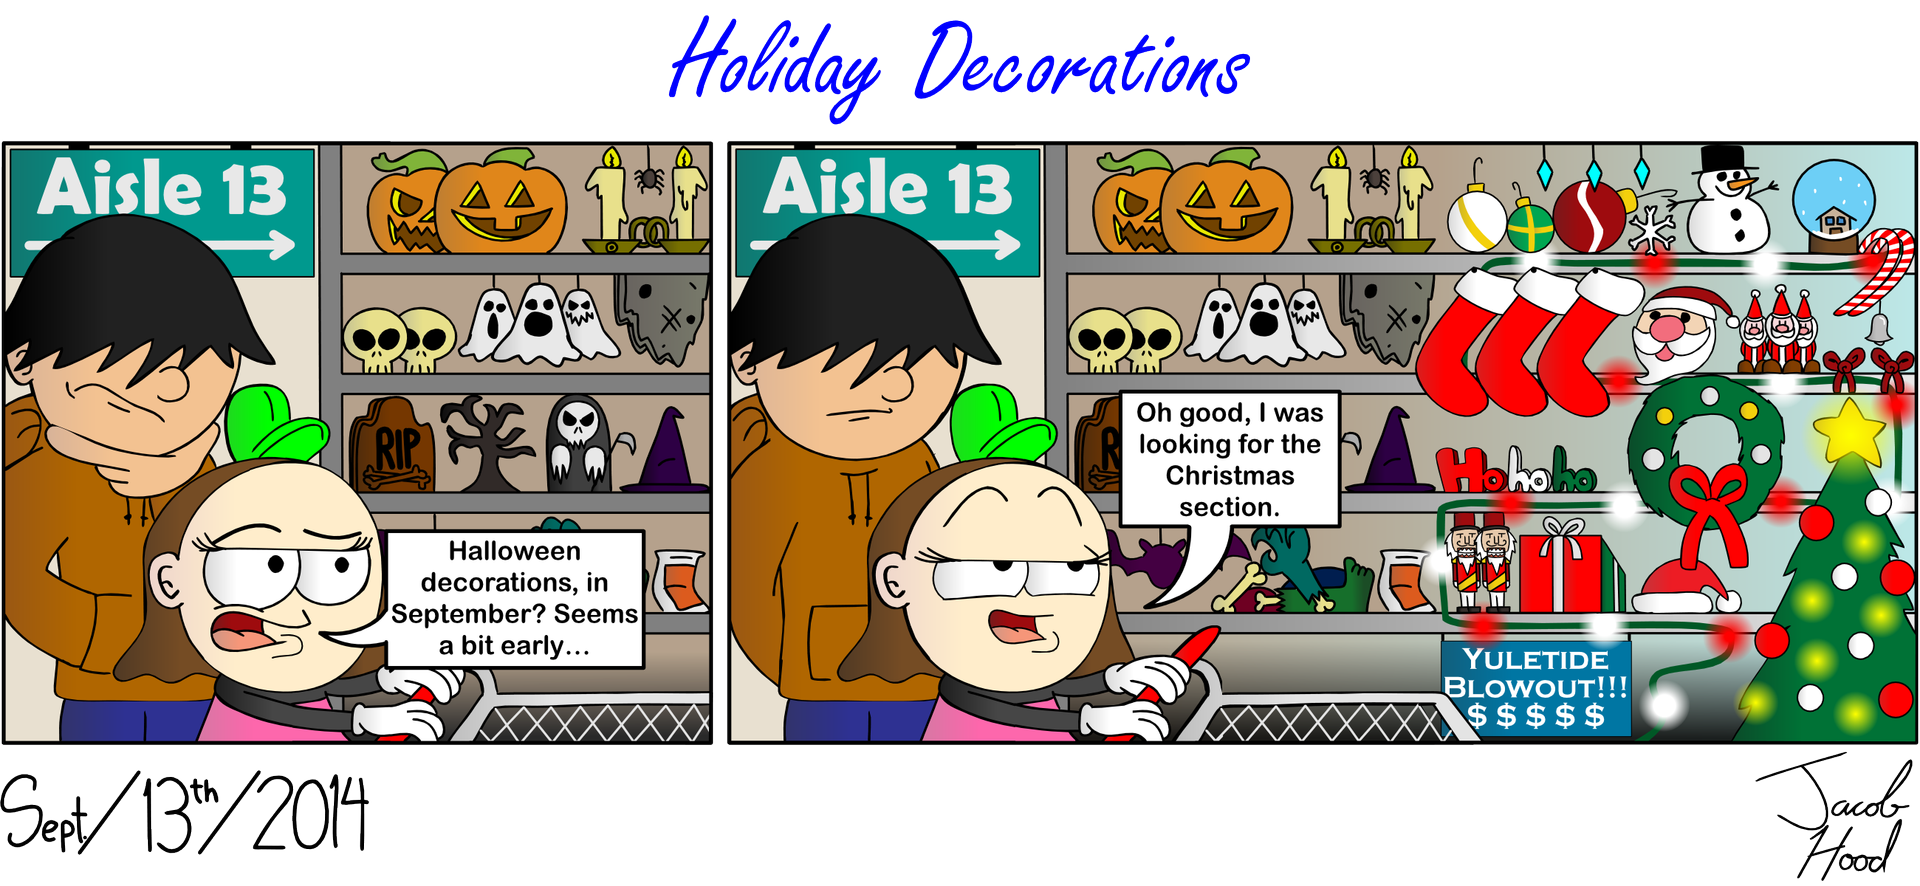 Holiday Decorations